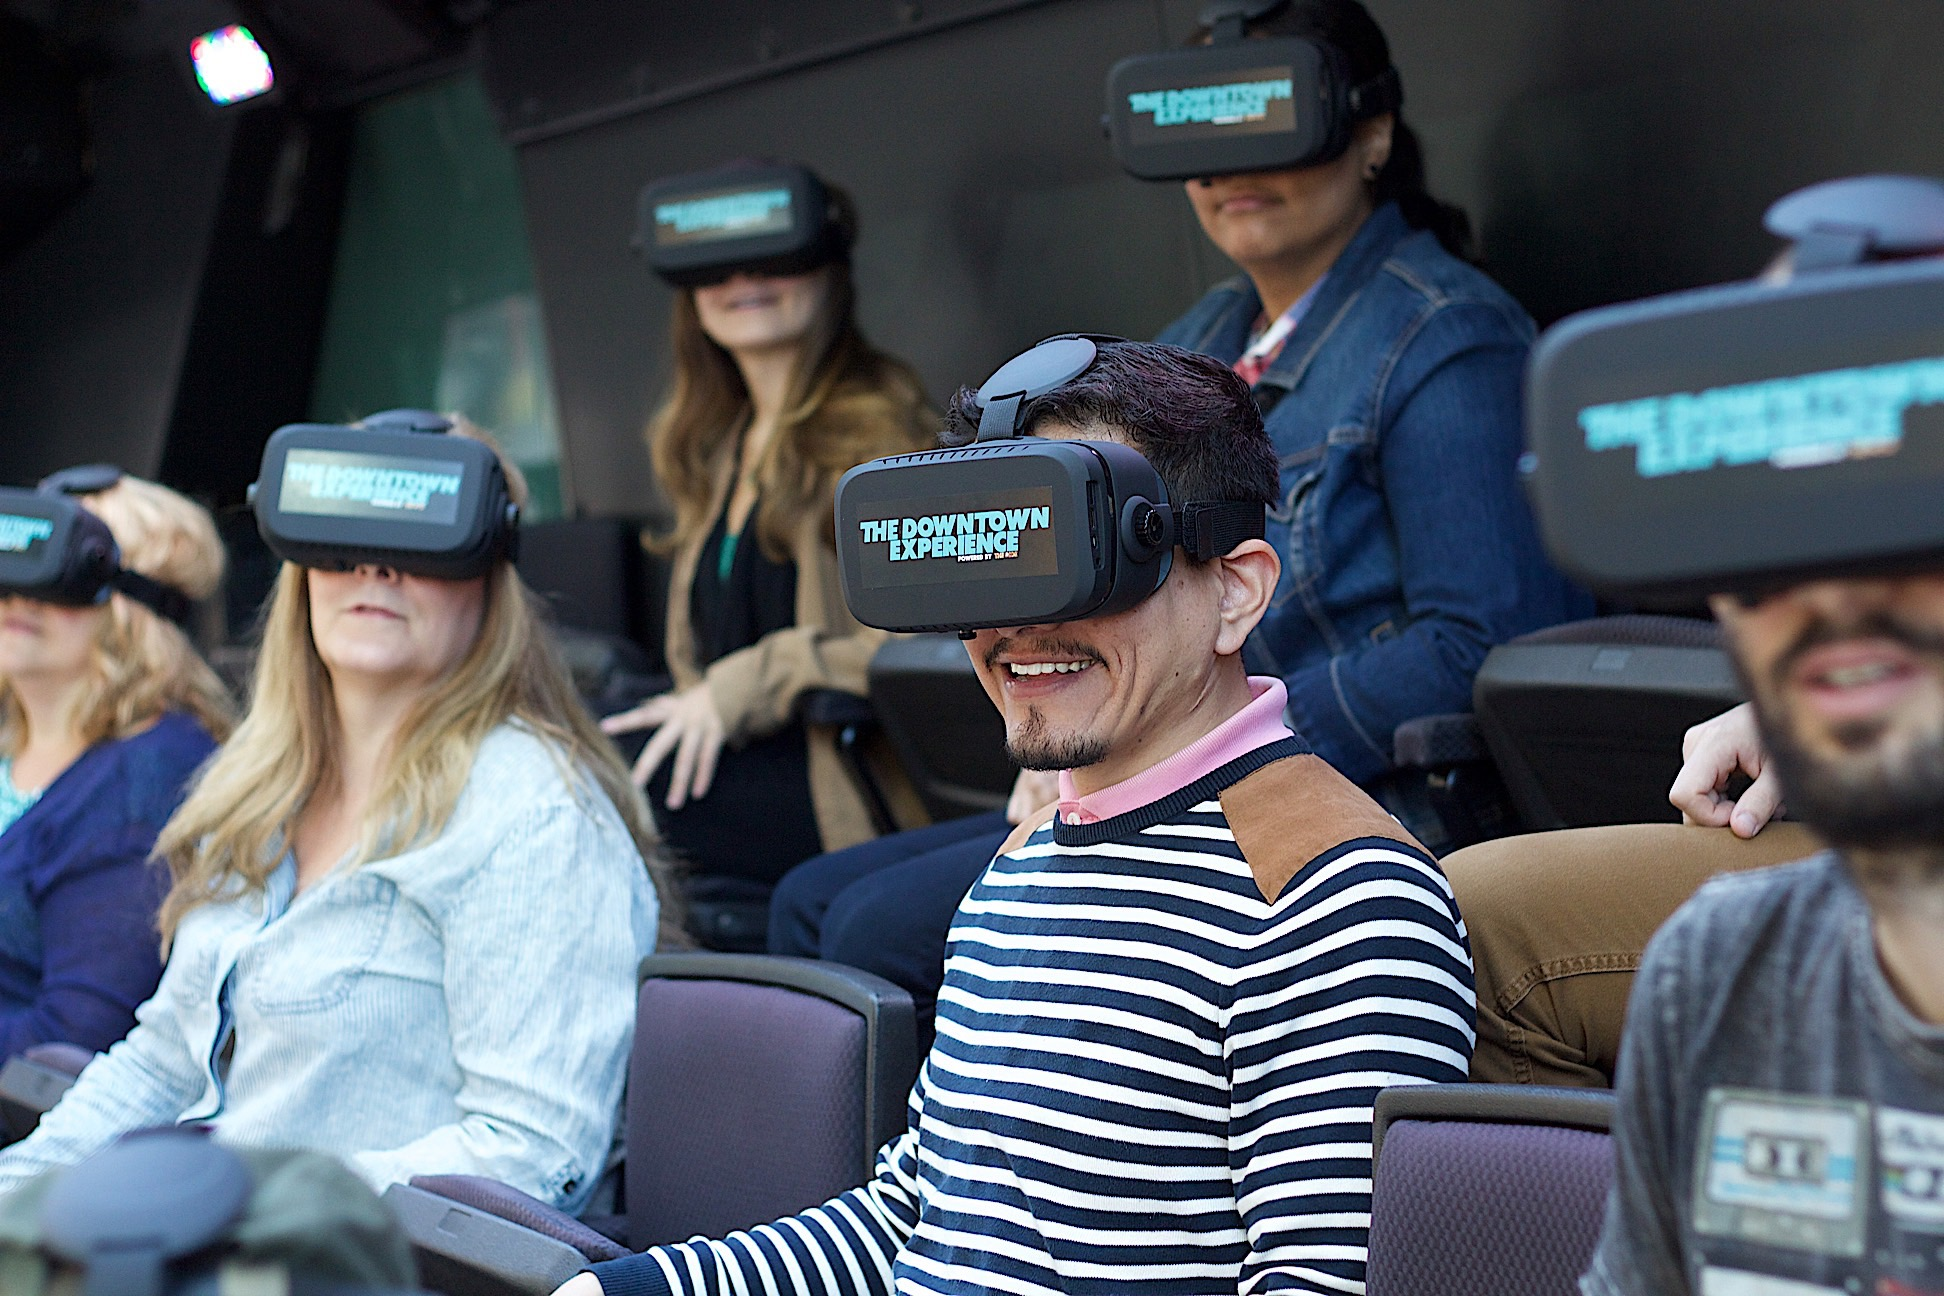 THE DOWNTOWN EXPERIENCE Powered by THE RIDE Virtual Reality Glasses